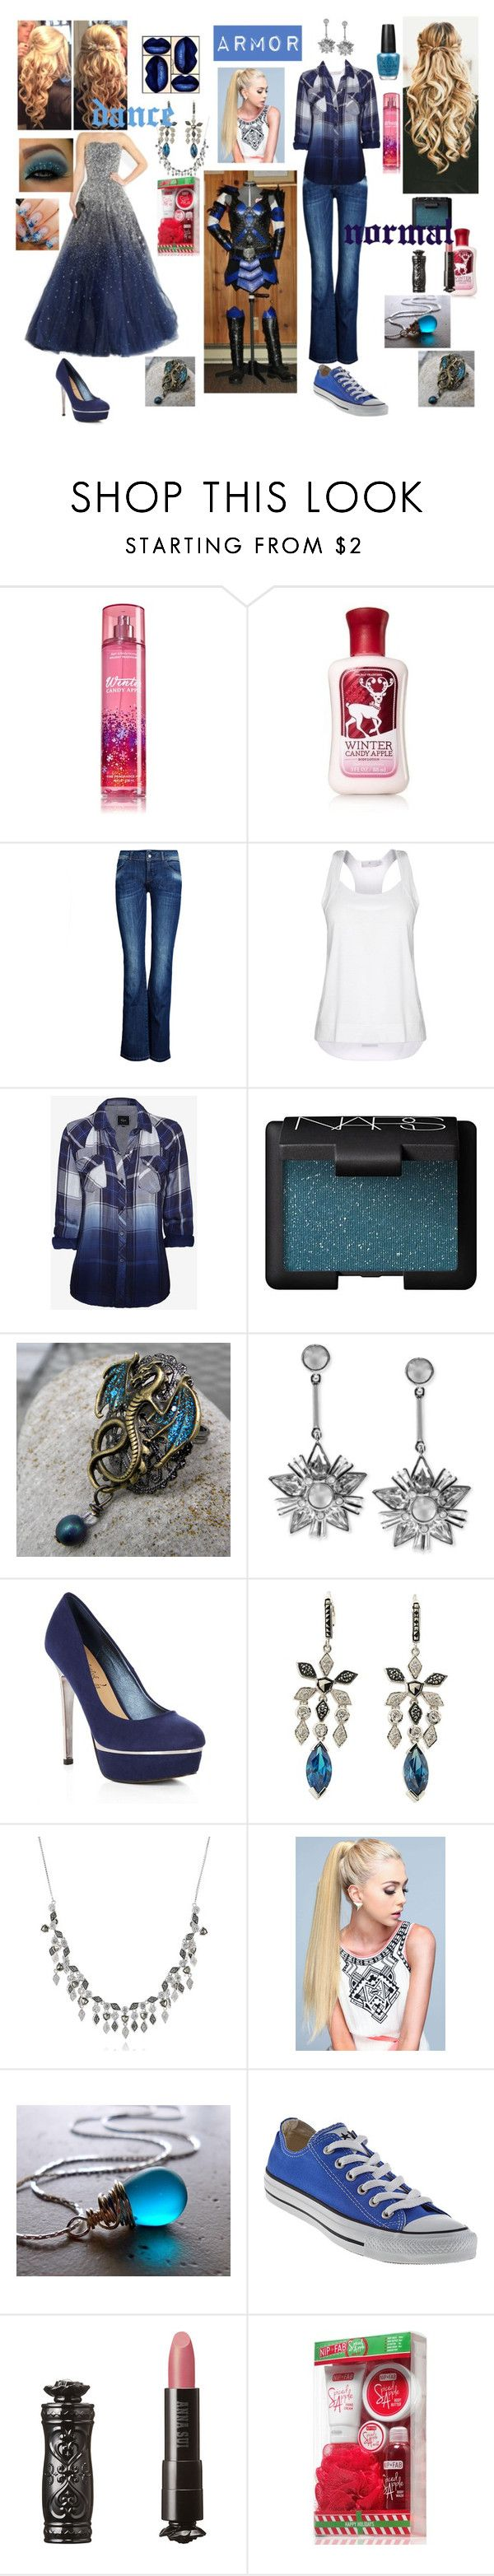 """""""jenny frost Daughter of jack frost"""" by frostedrose ❤ liked on Polyvore featuring ONLY, STELLA McCARTNEY, Rails, NARS Cosmetics, Givenchy, Marchesa, Judith Jack, Converse, Anna Sui and Nip+Fab"""